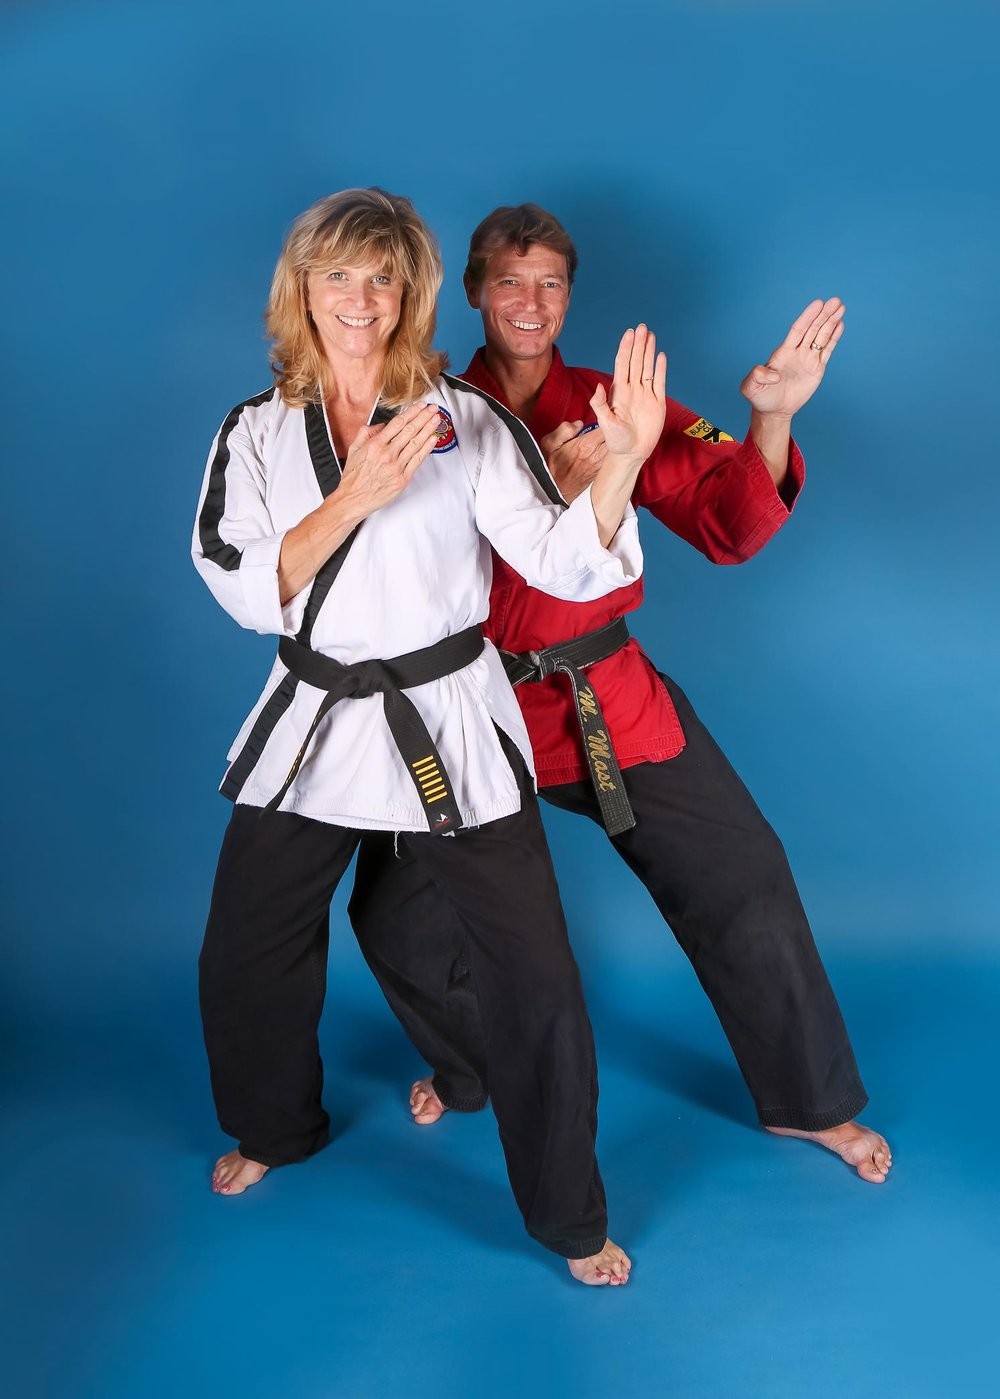 Masters Martial Arts Nolensville Owners